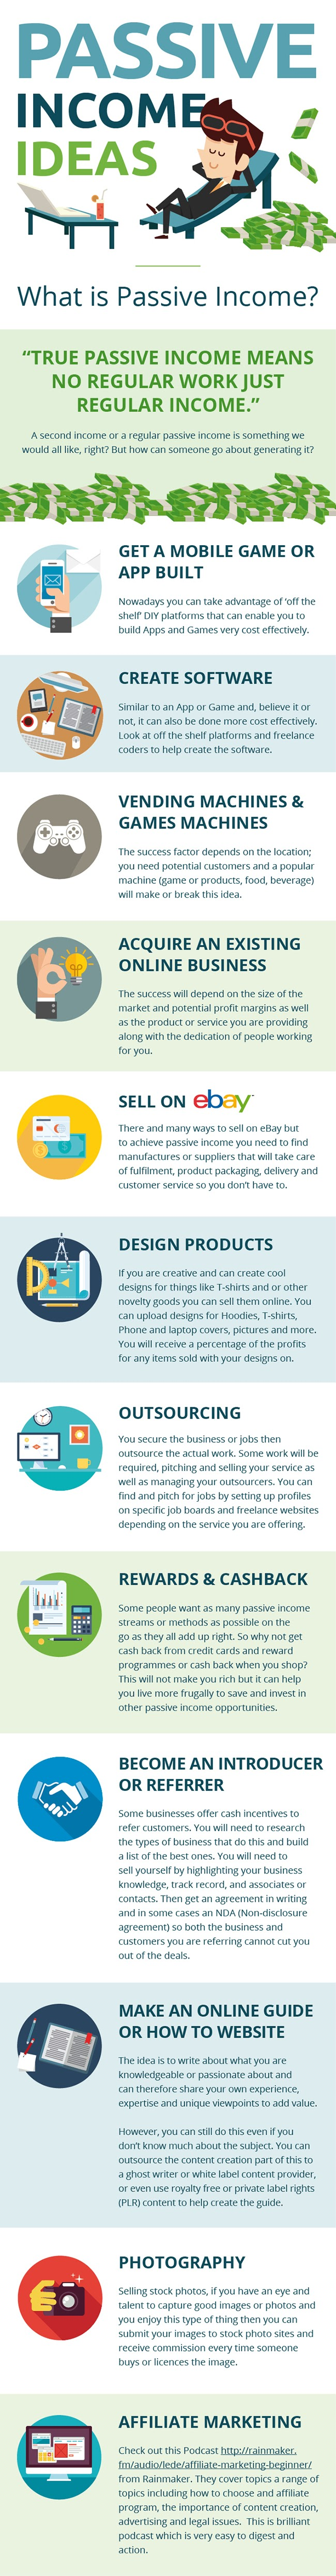 Passive income ideas - #infographic